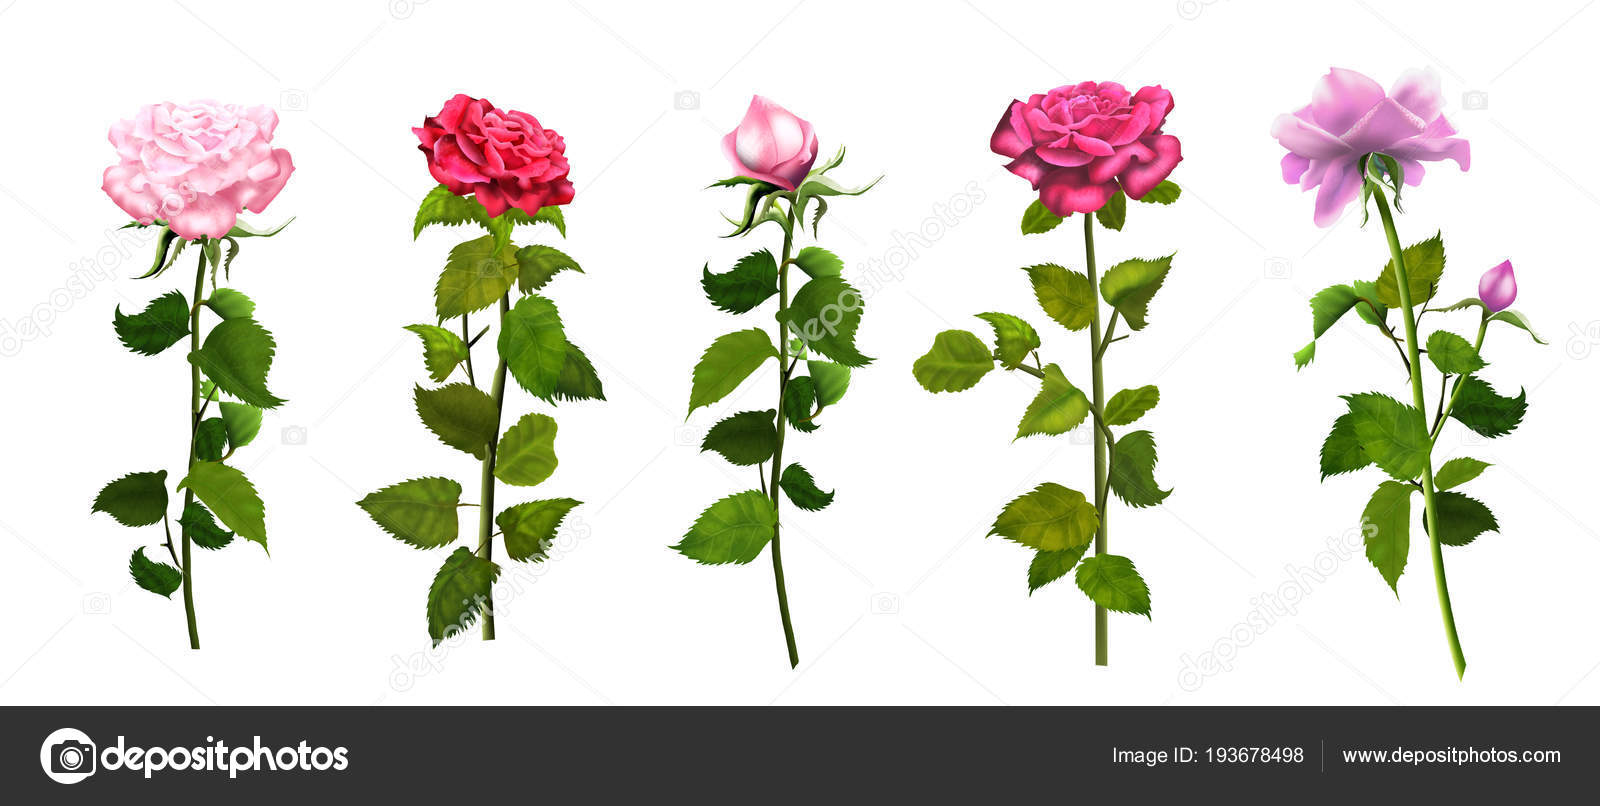 Roses Isolated On White Background Set Romance Wallpaper Pink And Red Banner With Copy Space For Wishes Text Wedding Day Womens Valentines